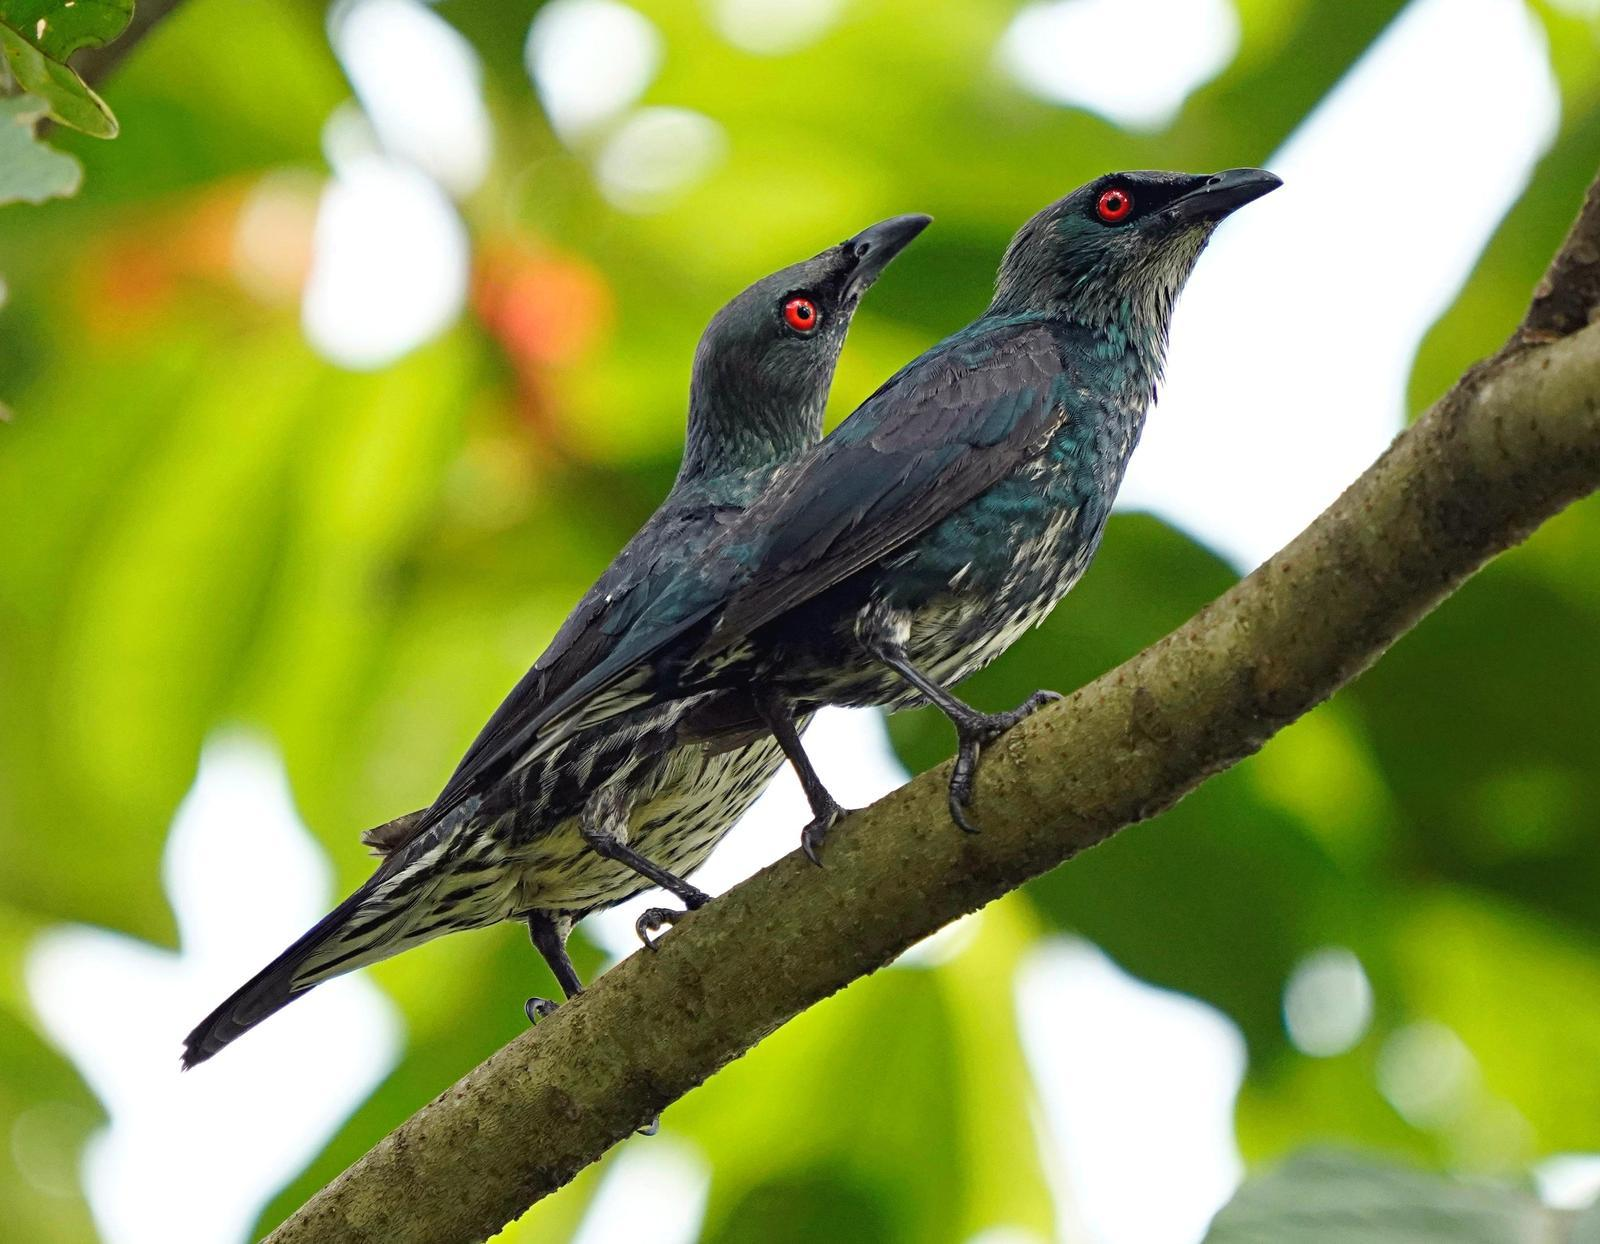 Asian Glossy Starling Photo by Steven Cheong